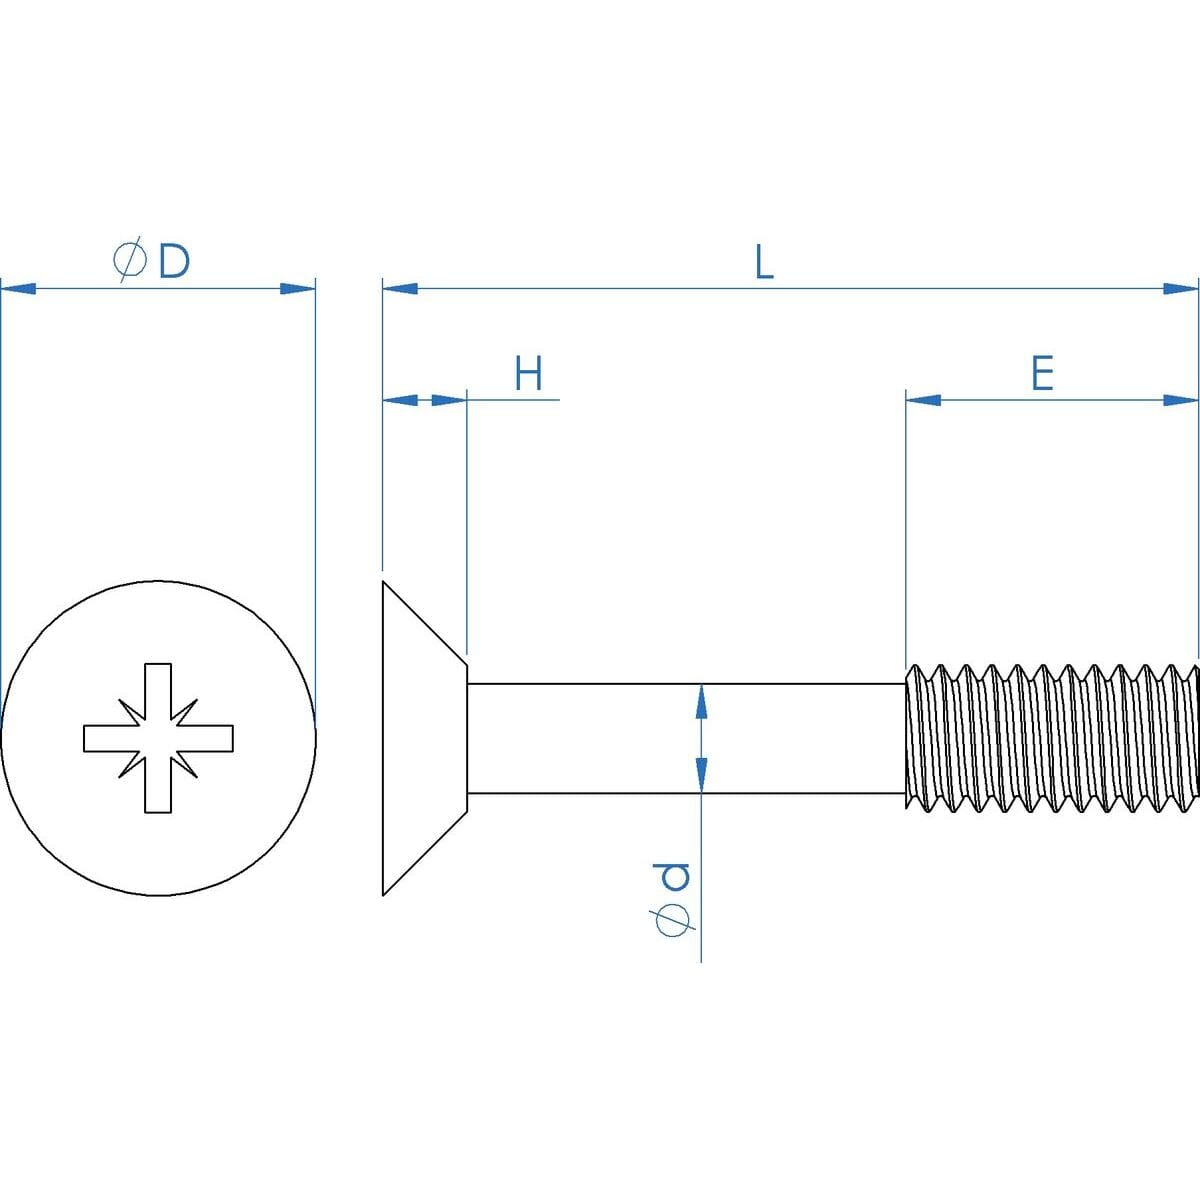 M3 x 20mm Pozi Countersunk Captive Screws (DIN 965Z) - Thread Locking Marine Stainless Steel (A4) Drawing